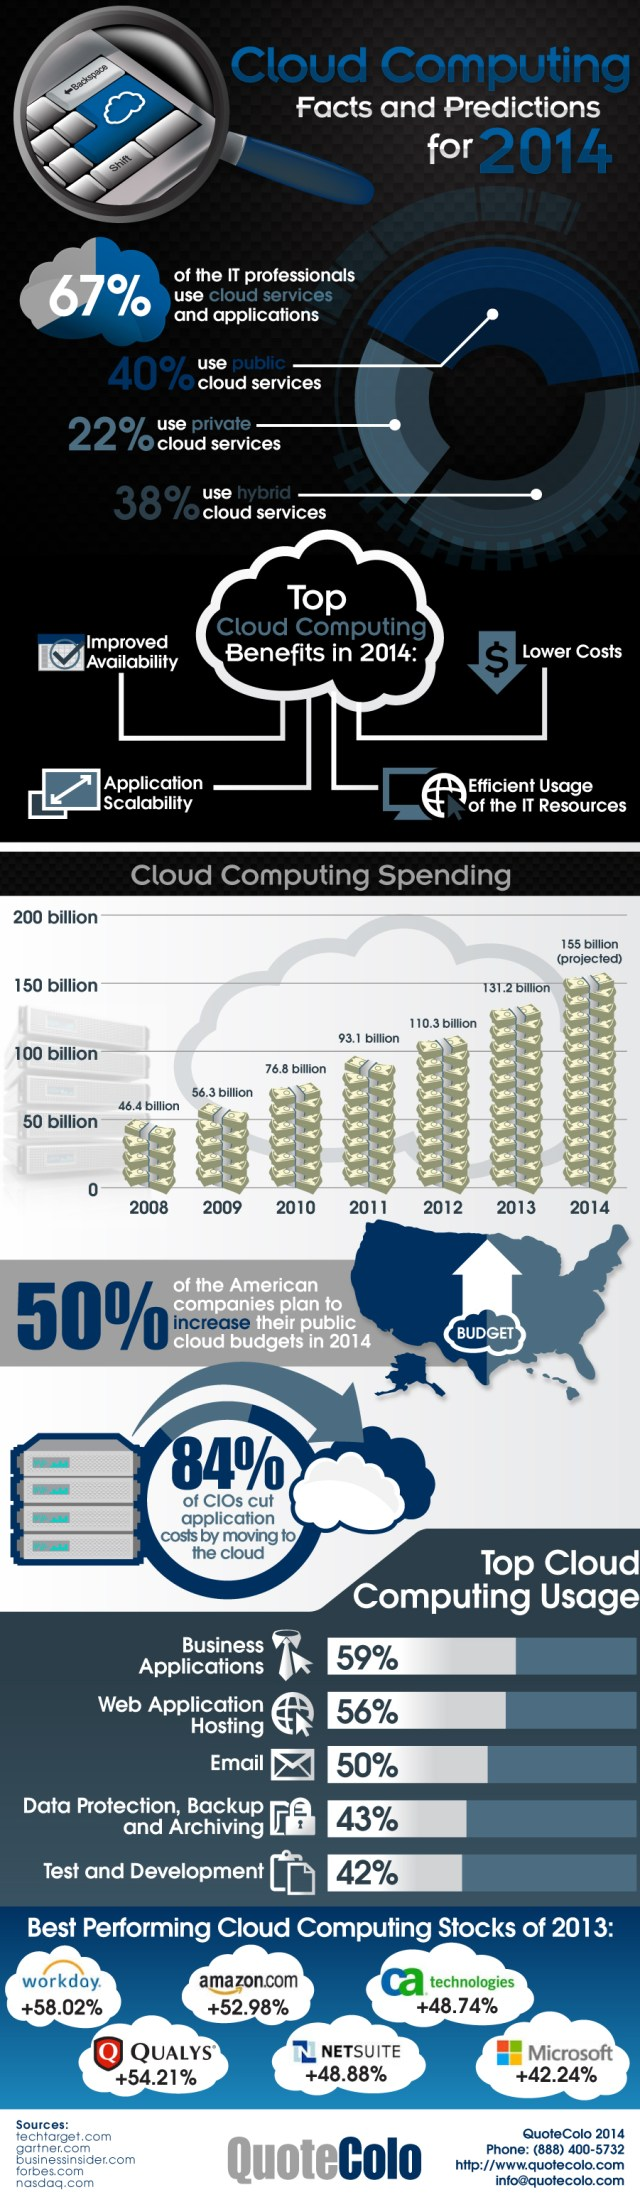 Cloud Computing in 2014 Facts and Predictions